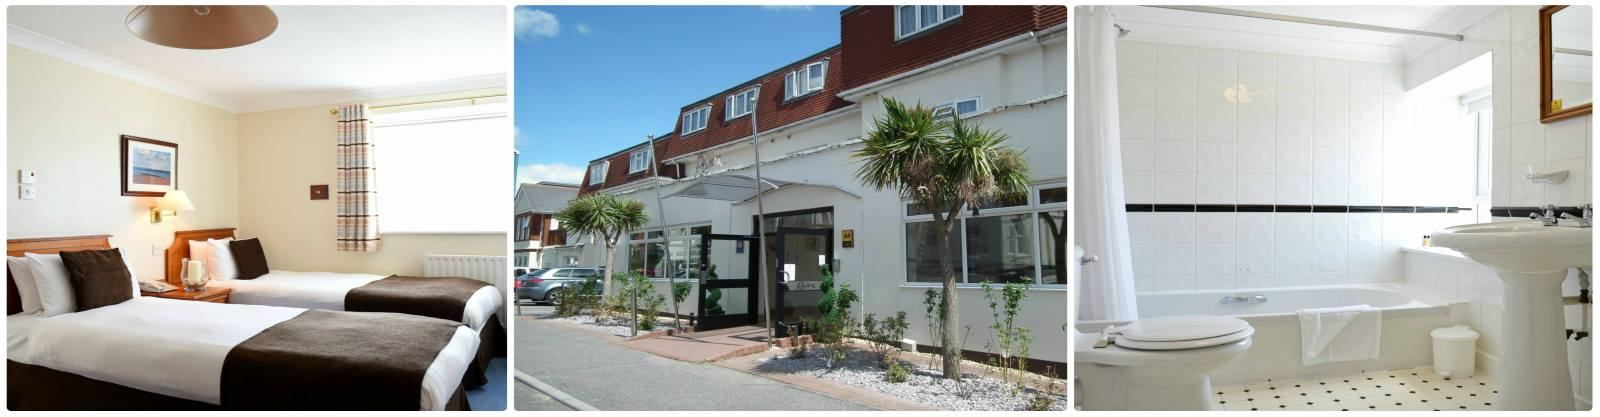 twin-room-hotel-in-Bournemouth